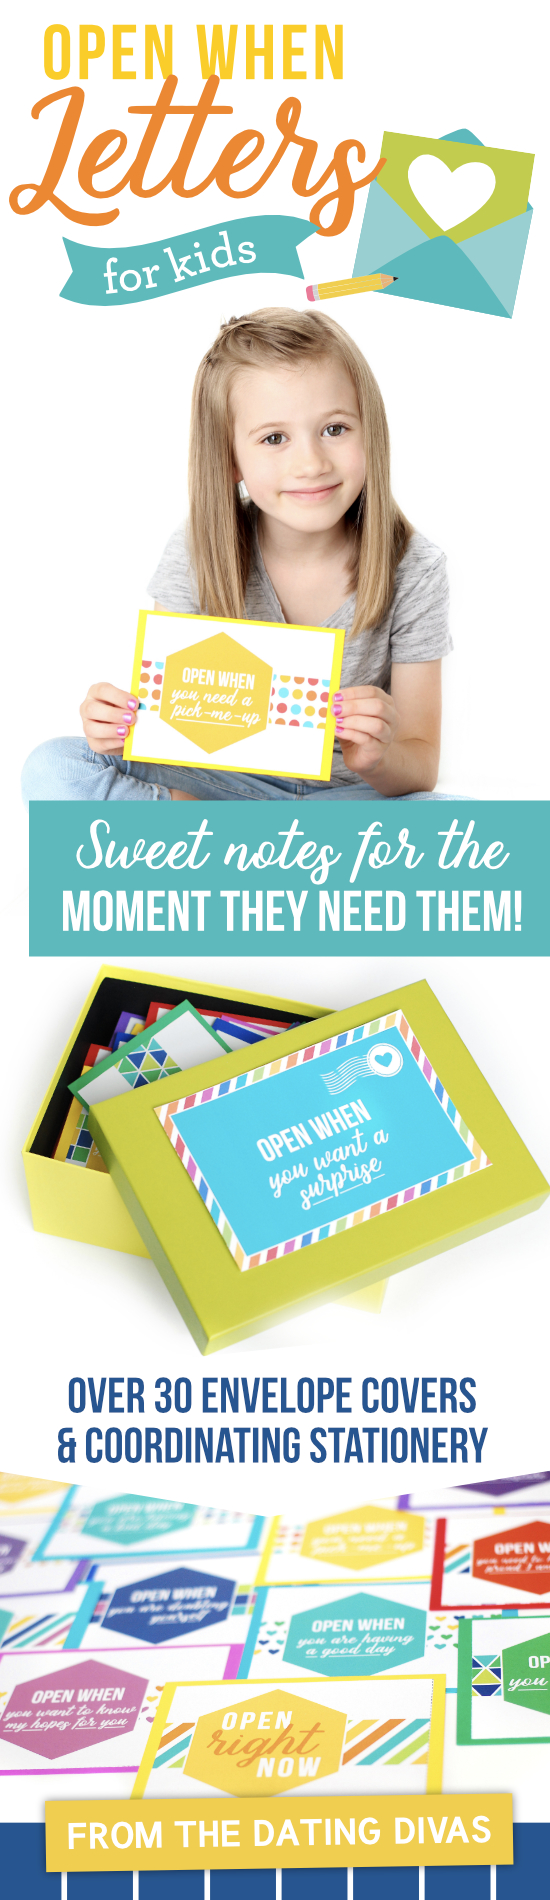 Open When... Letters for Kids